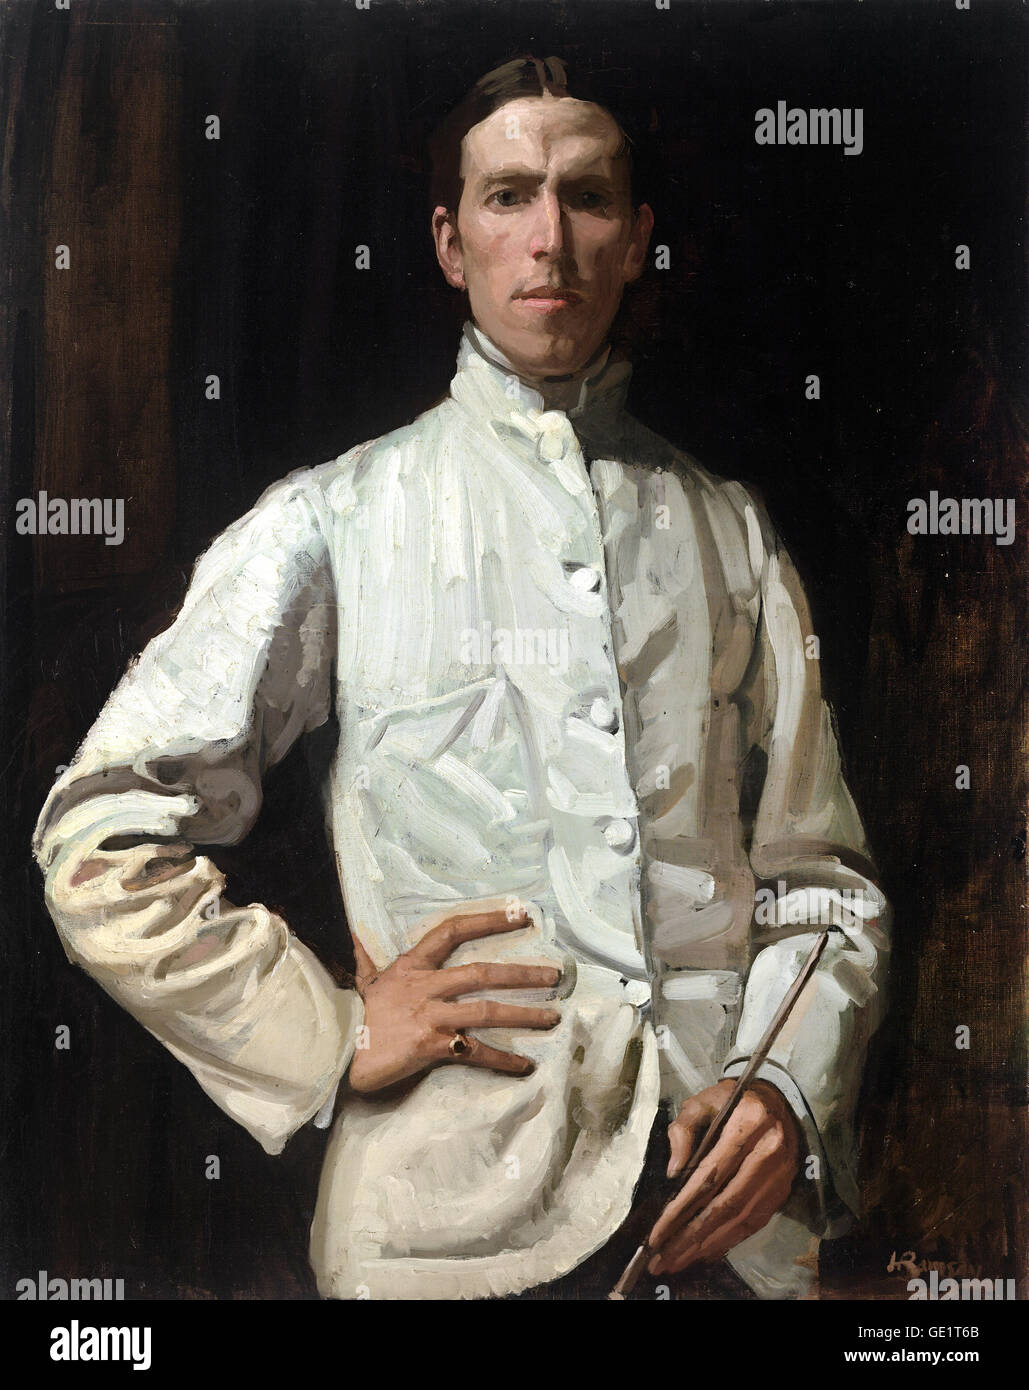 Hugh Ramsay, Self-portrait in White Jacket 1901-1902 Oil on canvas. National Gallery of Victoria, Australia. - Stock Image